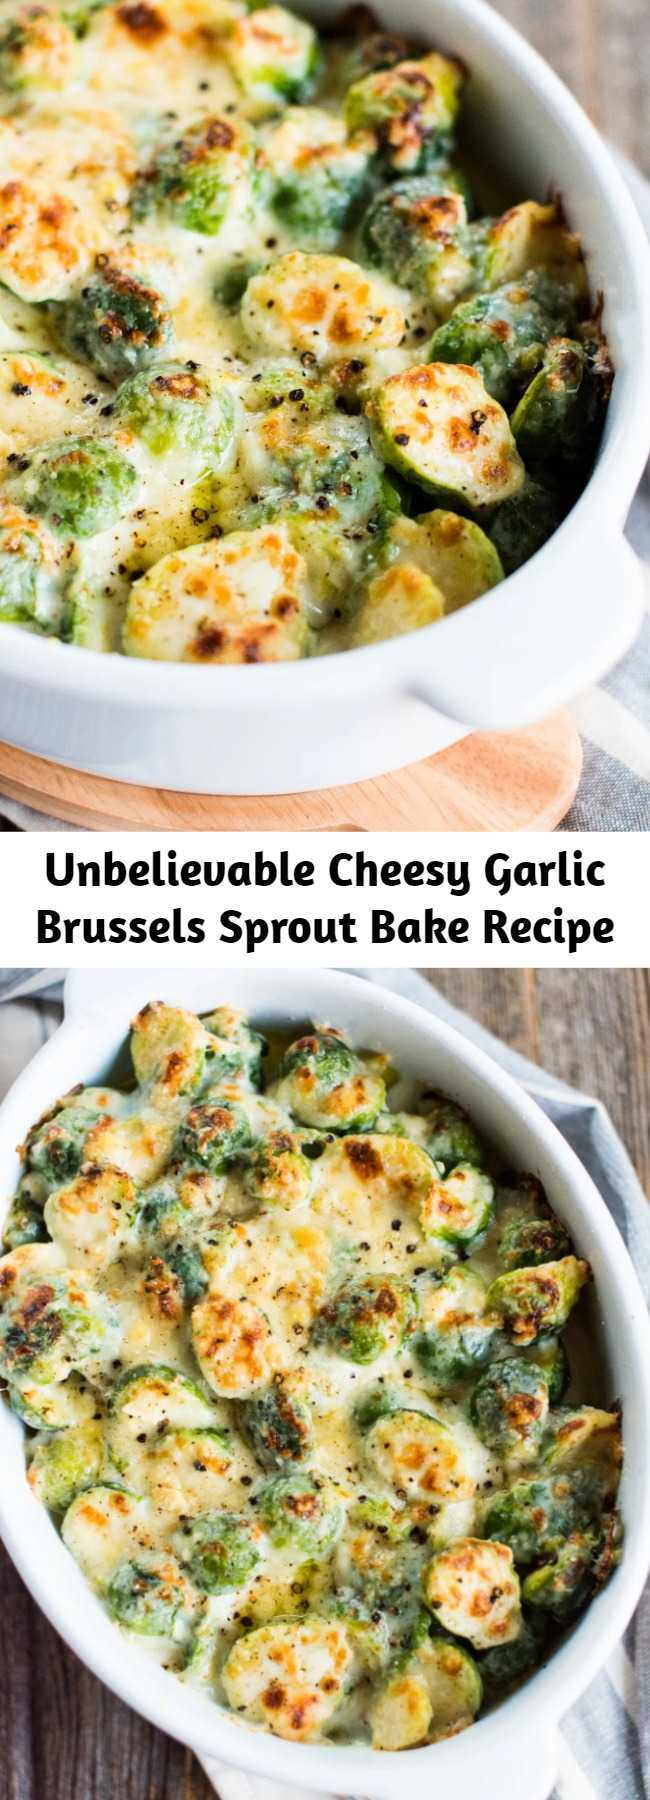 Unbelievable Cheesy Garlic Brussels Sprout Bake Recipe - This recipe takes brussels sprouts goodness to the next level and is so creamy and rich you would swear it's decadent, when really it's under 140 calories serving and full of veg! Yum.